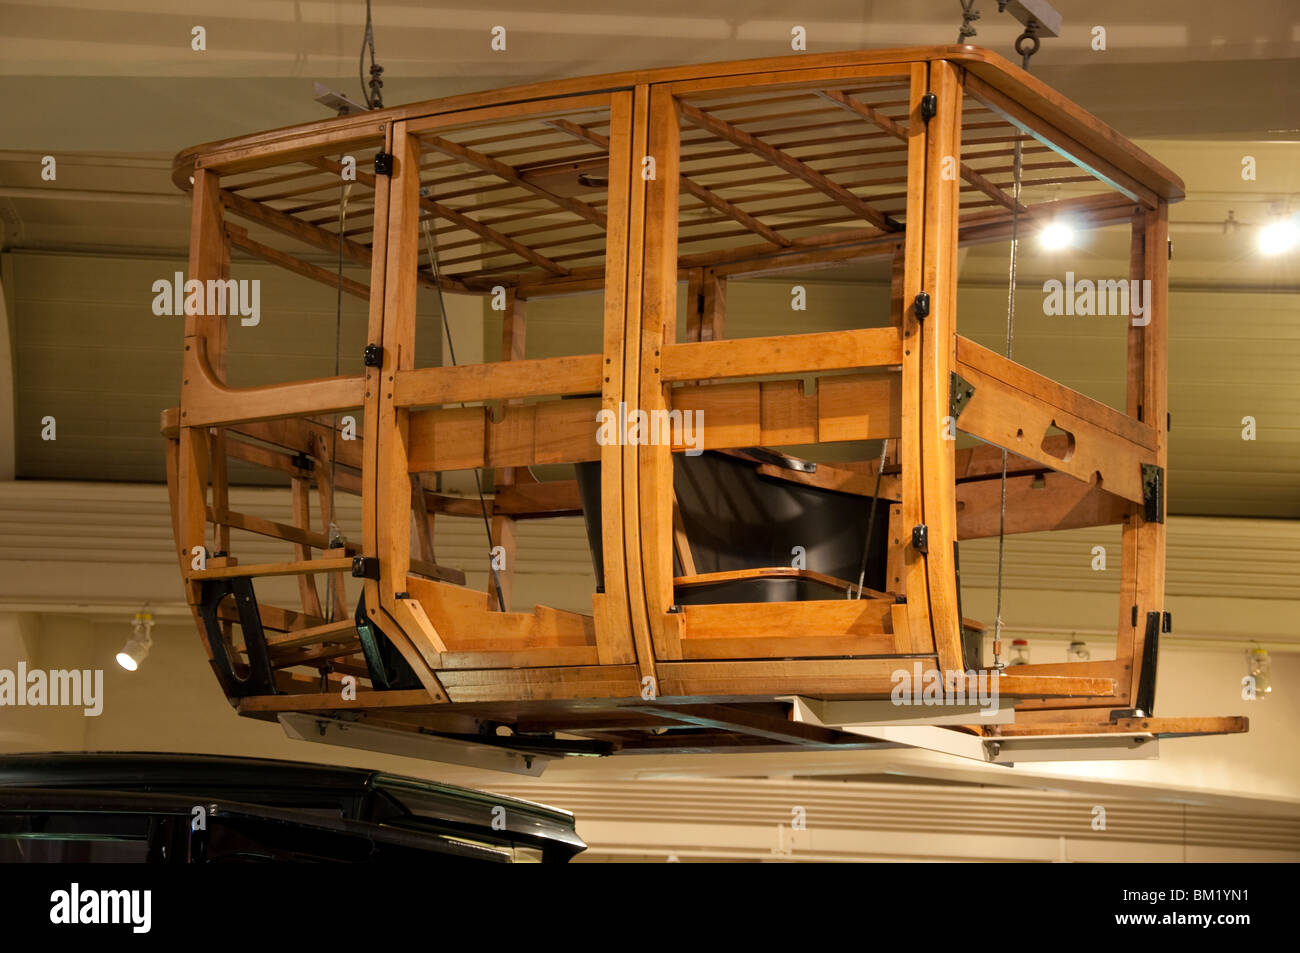 Wood Frame of Old Car - Stock Image